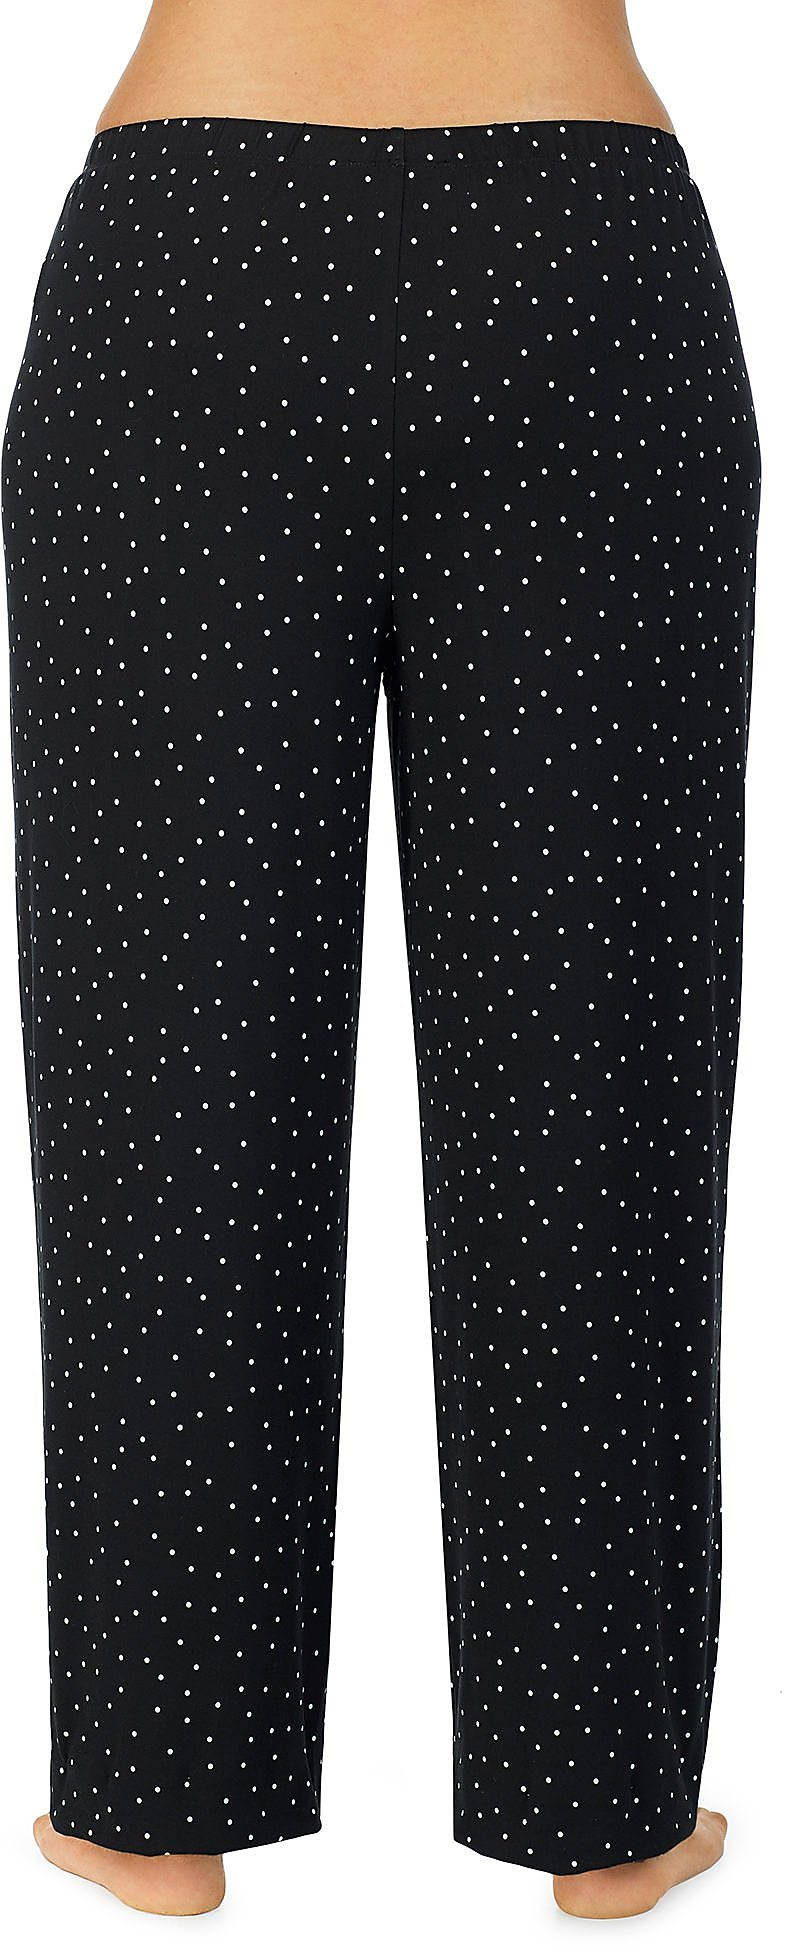 Ellen Tracy Plus Polka Dot Print Pajama Pants Ebay